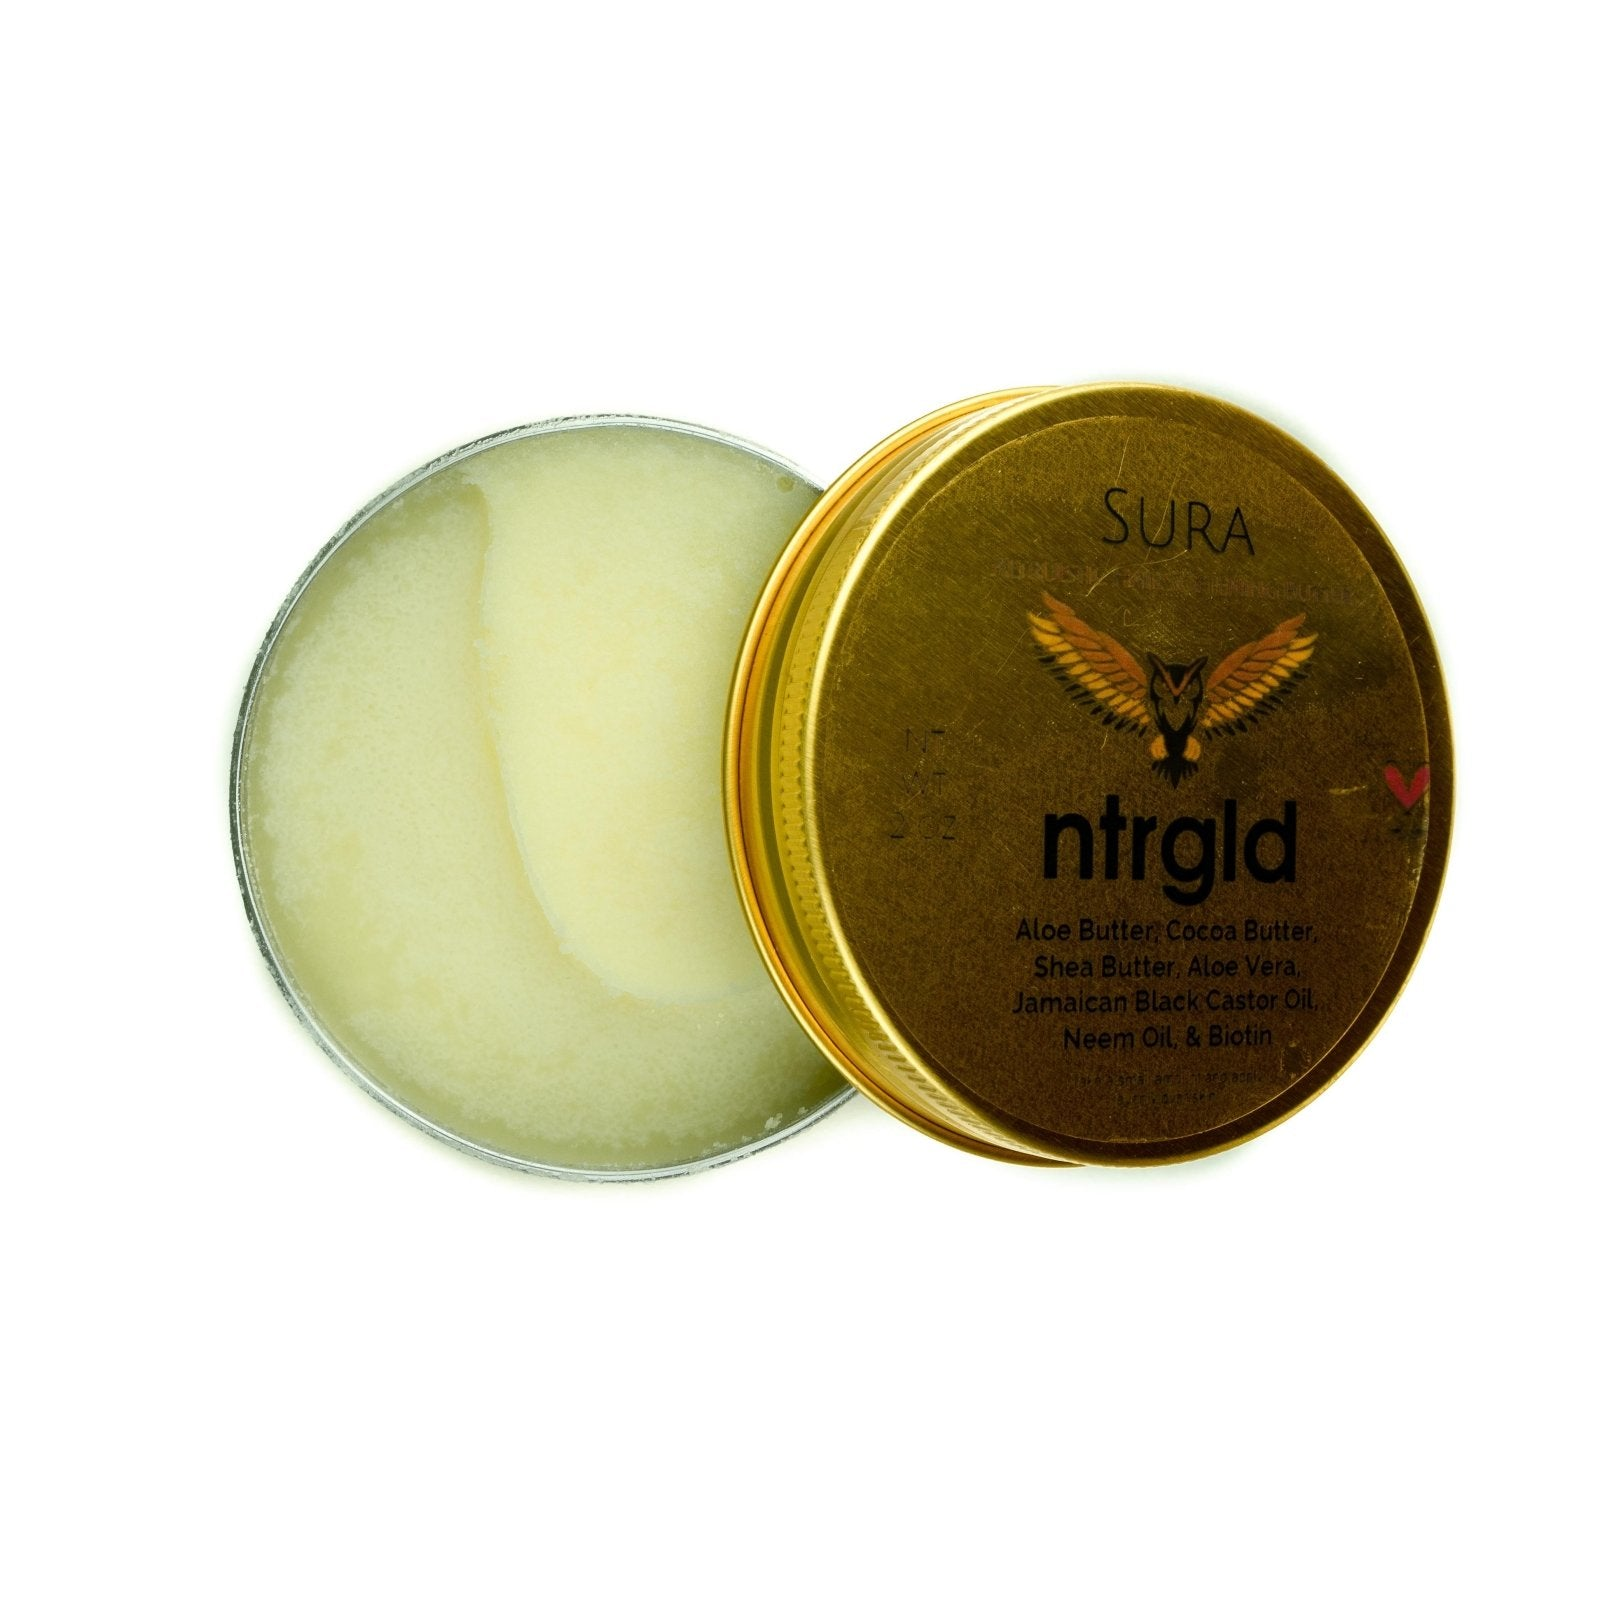 Sura - Hair Softening Butter - Neter Gold - NTRGLD